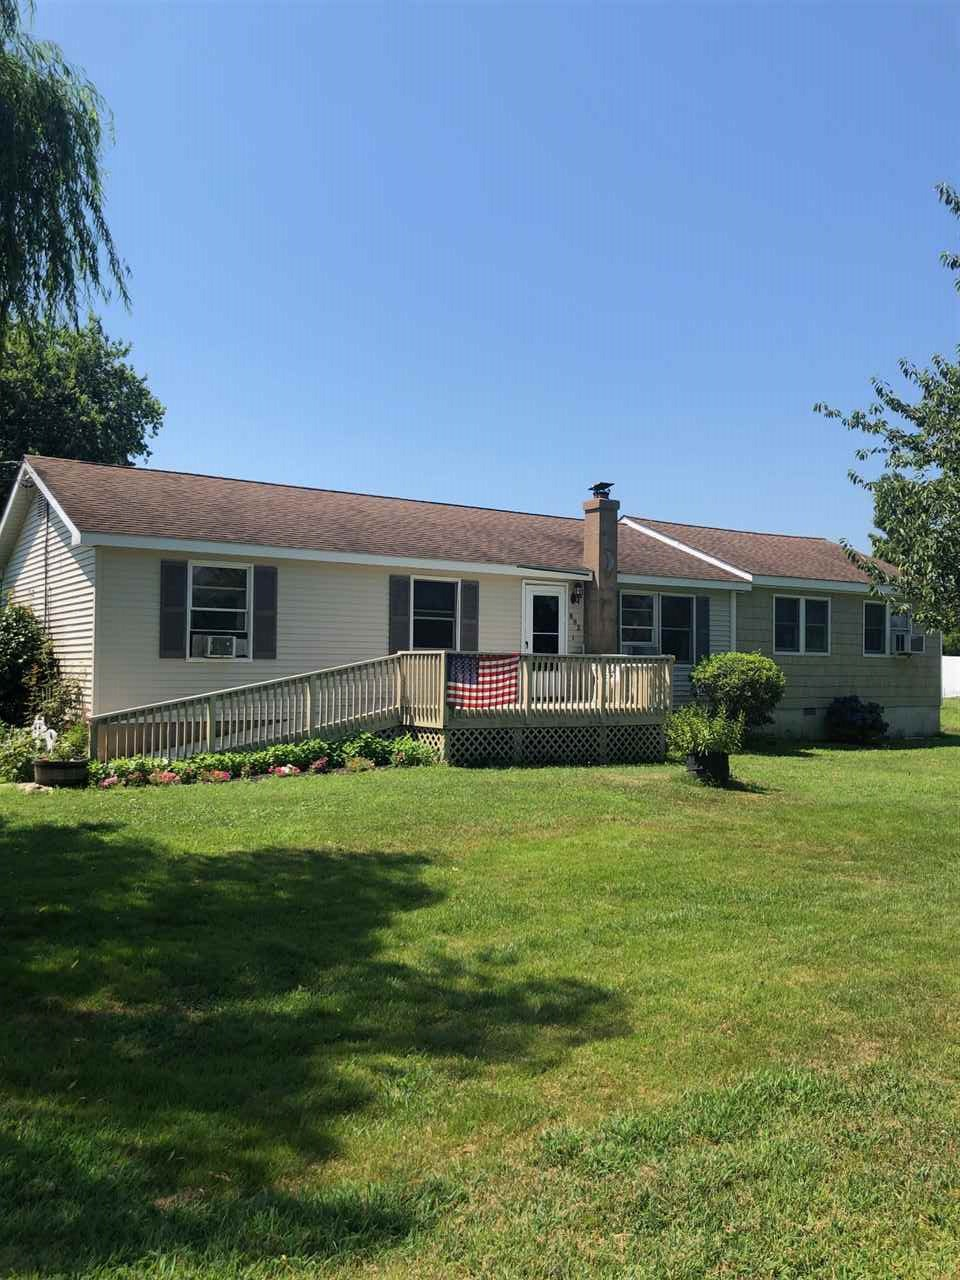 682 New England Road, Lower Township, NJ 08204